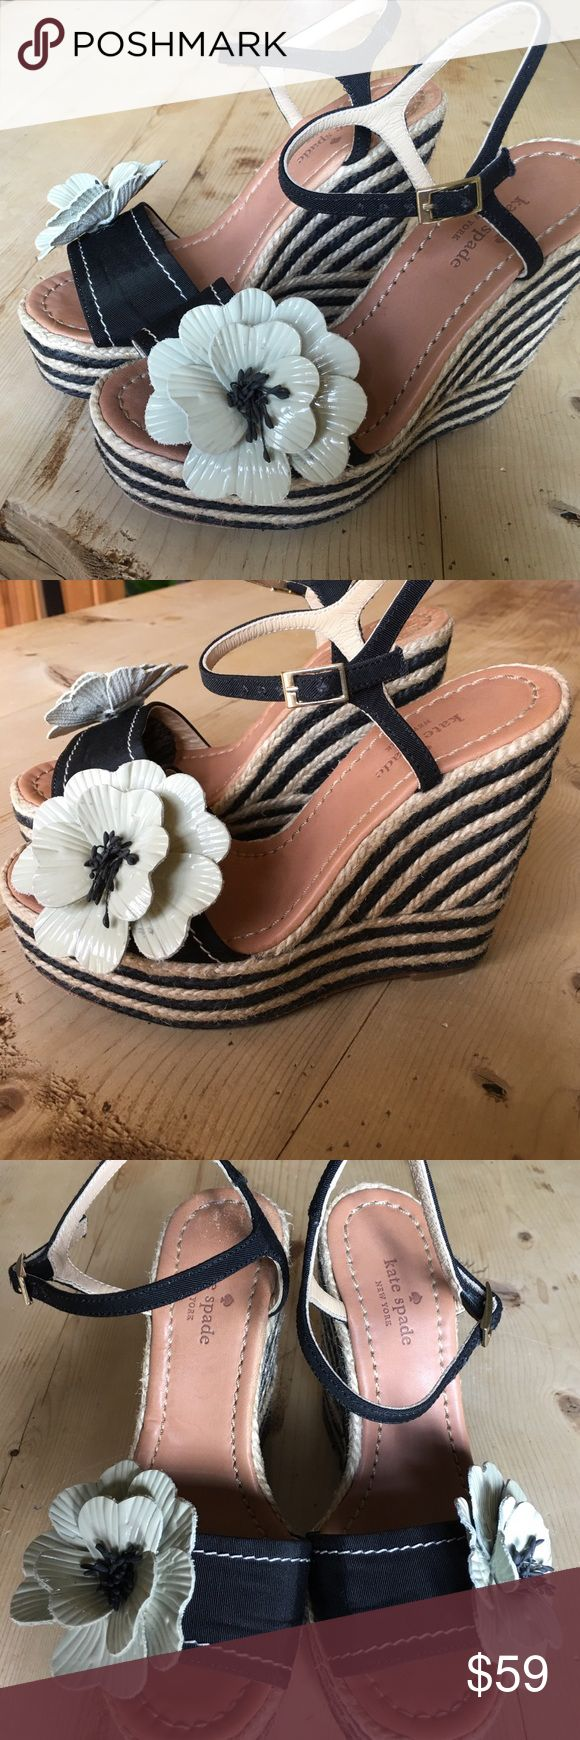 kate spade flower wedge sandals size 5 Excellent shape. Paten leather flower. Black and cream. Grosgrain ribbon fabric. kate spade Shoes Platforms